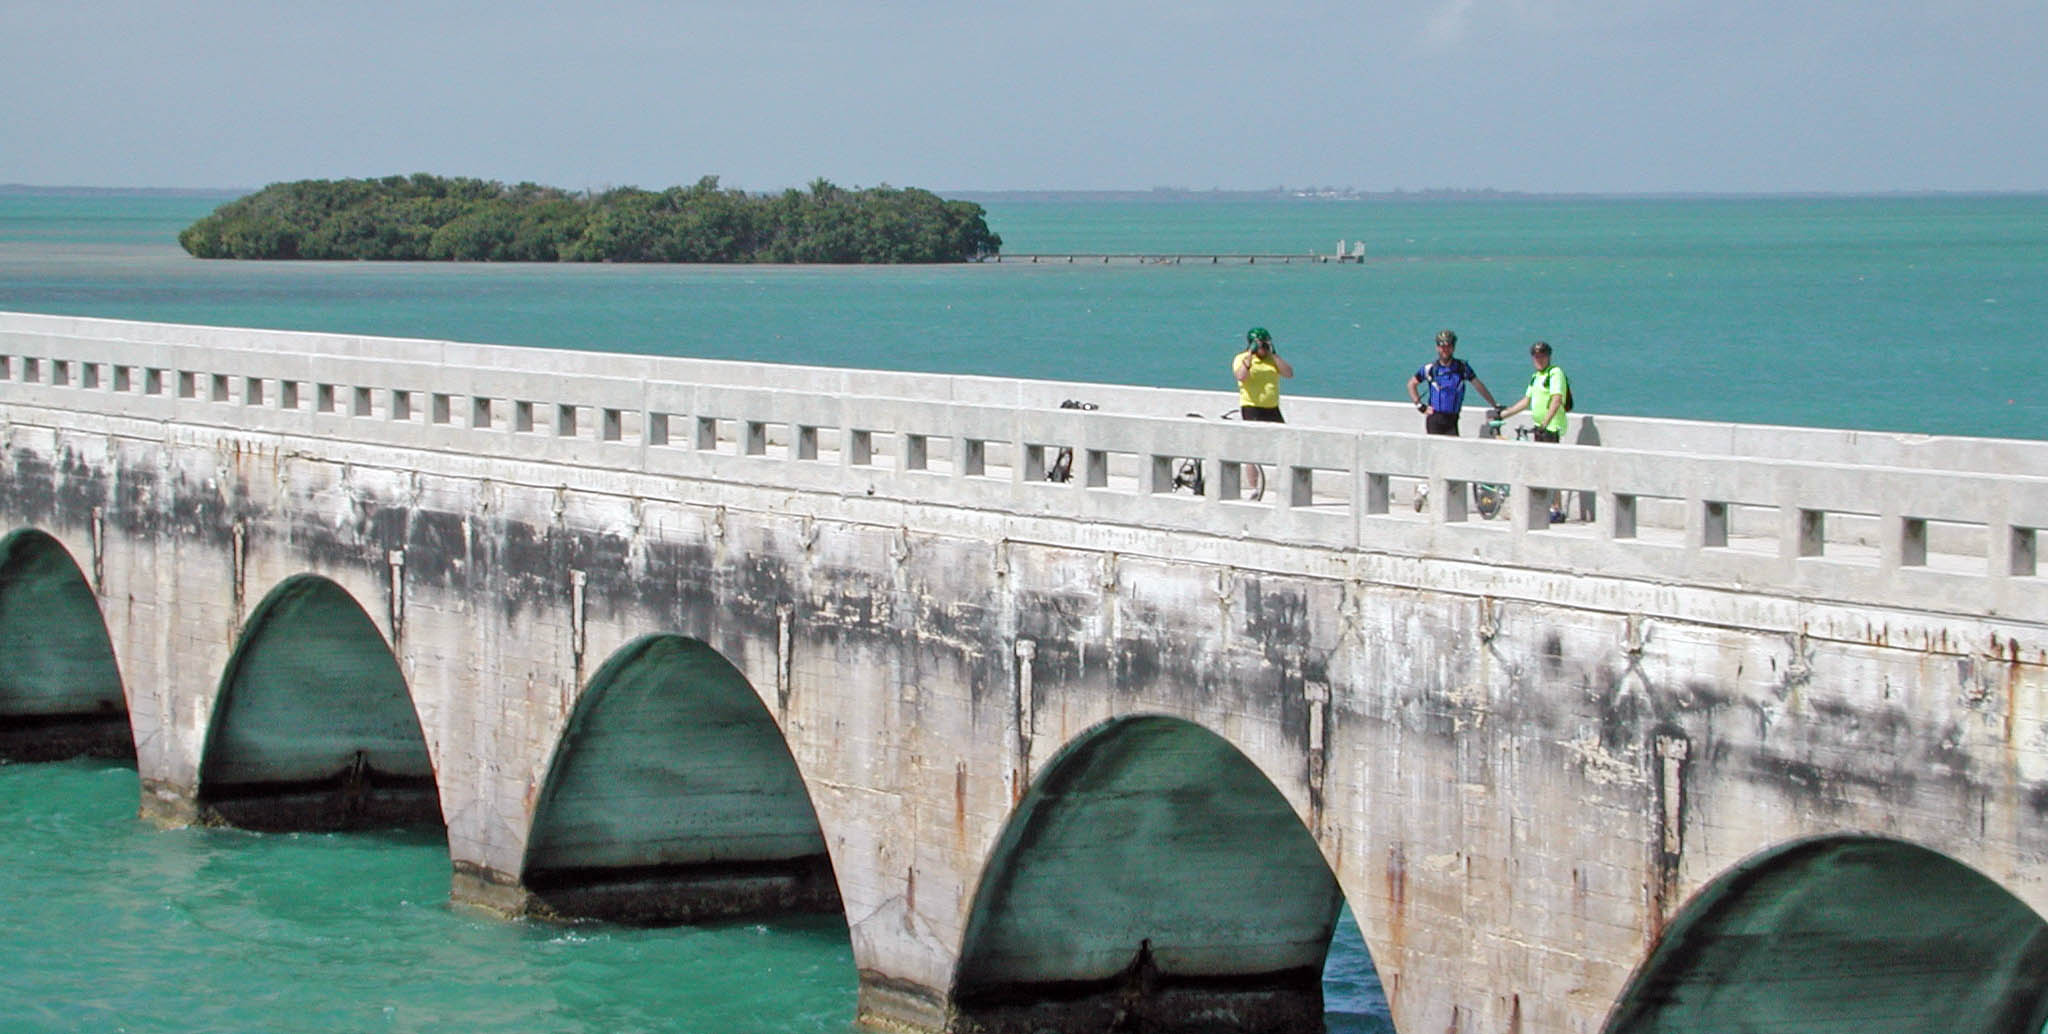 Matt, Wally and Mark with their bikes on a Bridge on the way to Key West, Florida